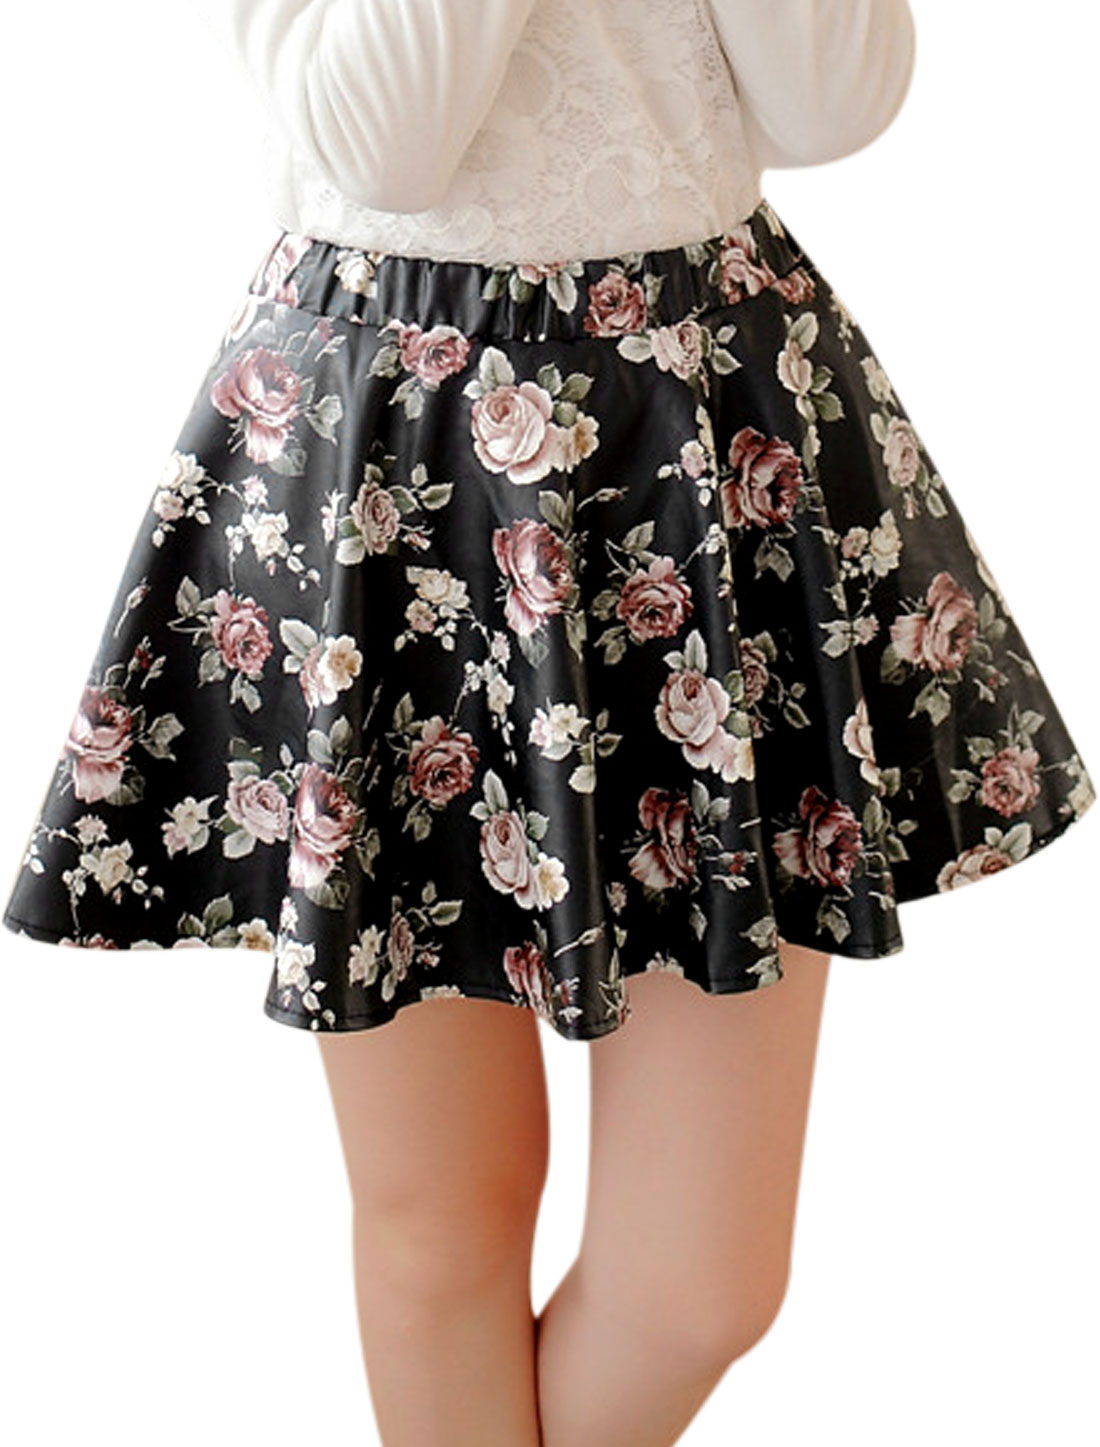 Natural Waist Flower Prints Mini Skirt for Women Navy Blue Multi Color S